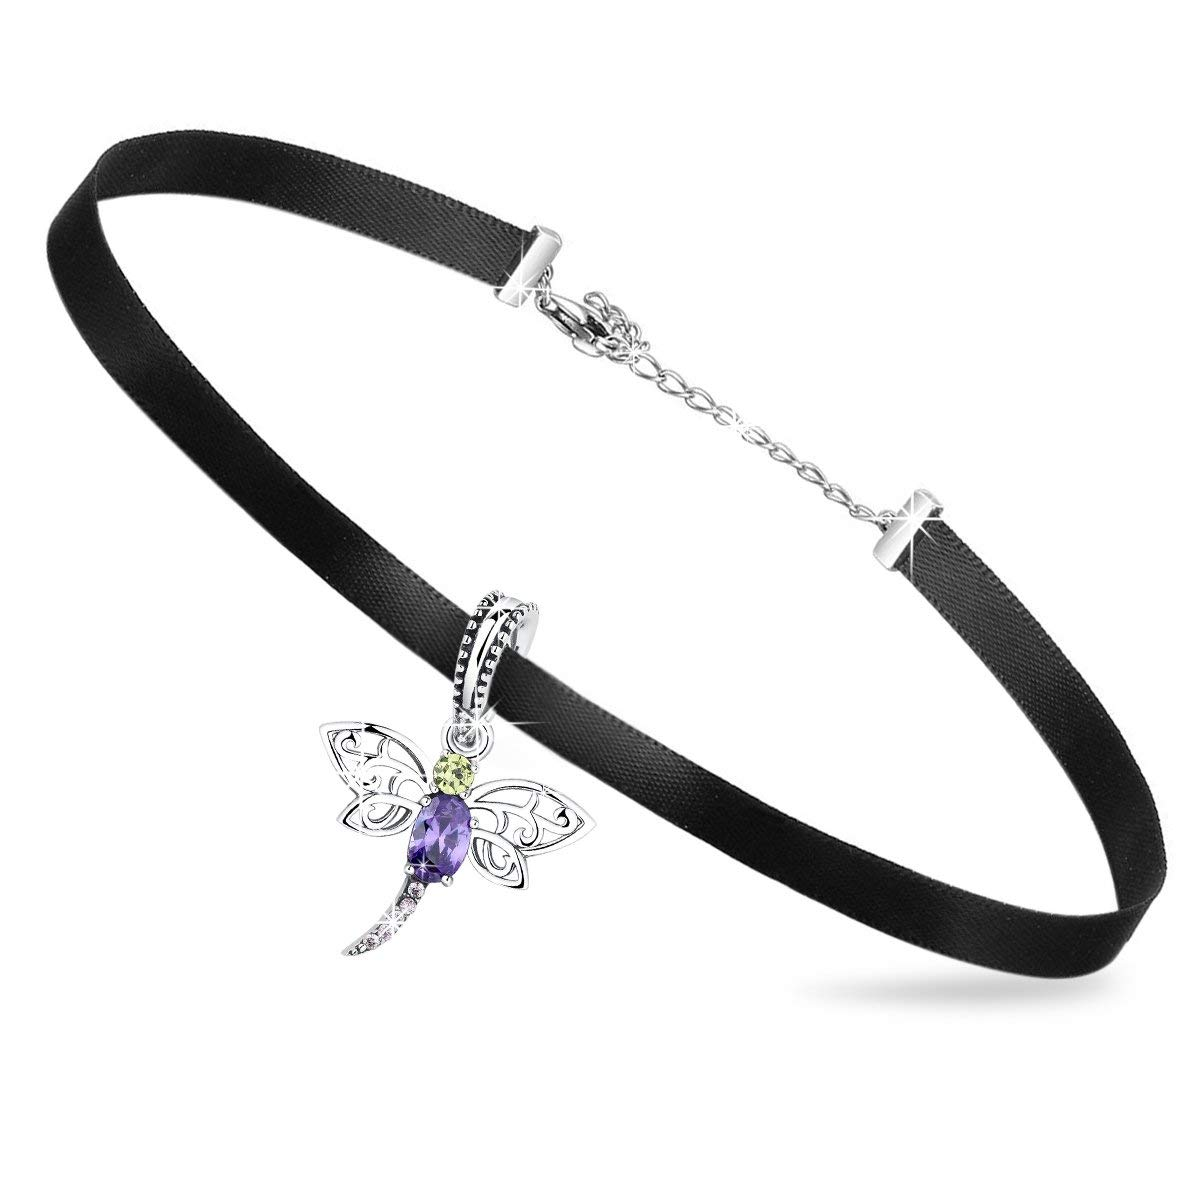 512265909 Get Quotations · Forever Queen Choker Necklace for Women Girls with 925  Sterling Silver& Romantic Clear CZ Lovely Dragonfly